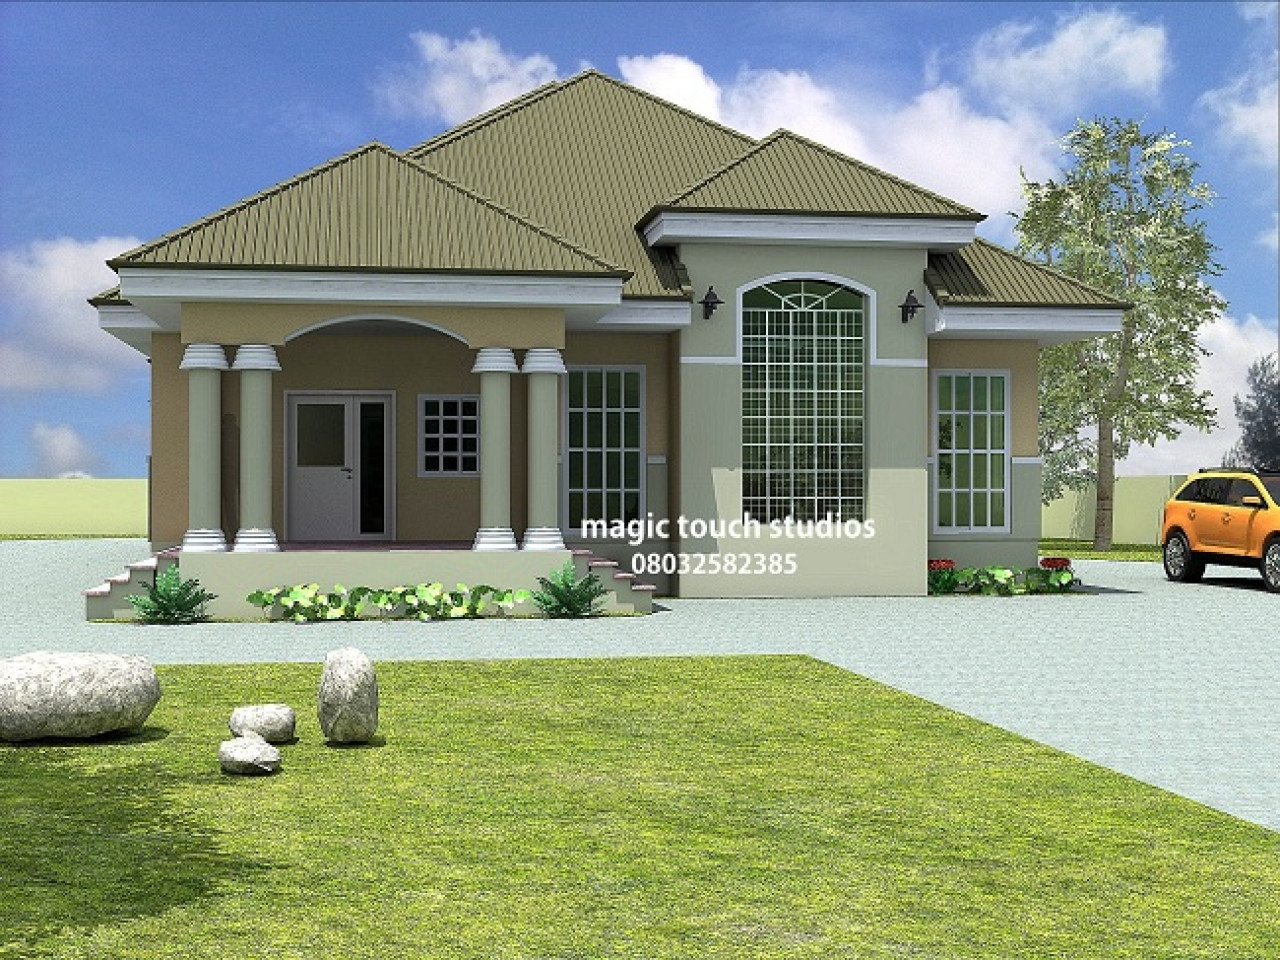 Illustrate Home Designs Kenya 5 Bedroom Bungalow 5 Bedroom Bungalow House Plan In